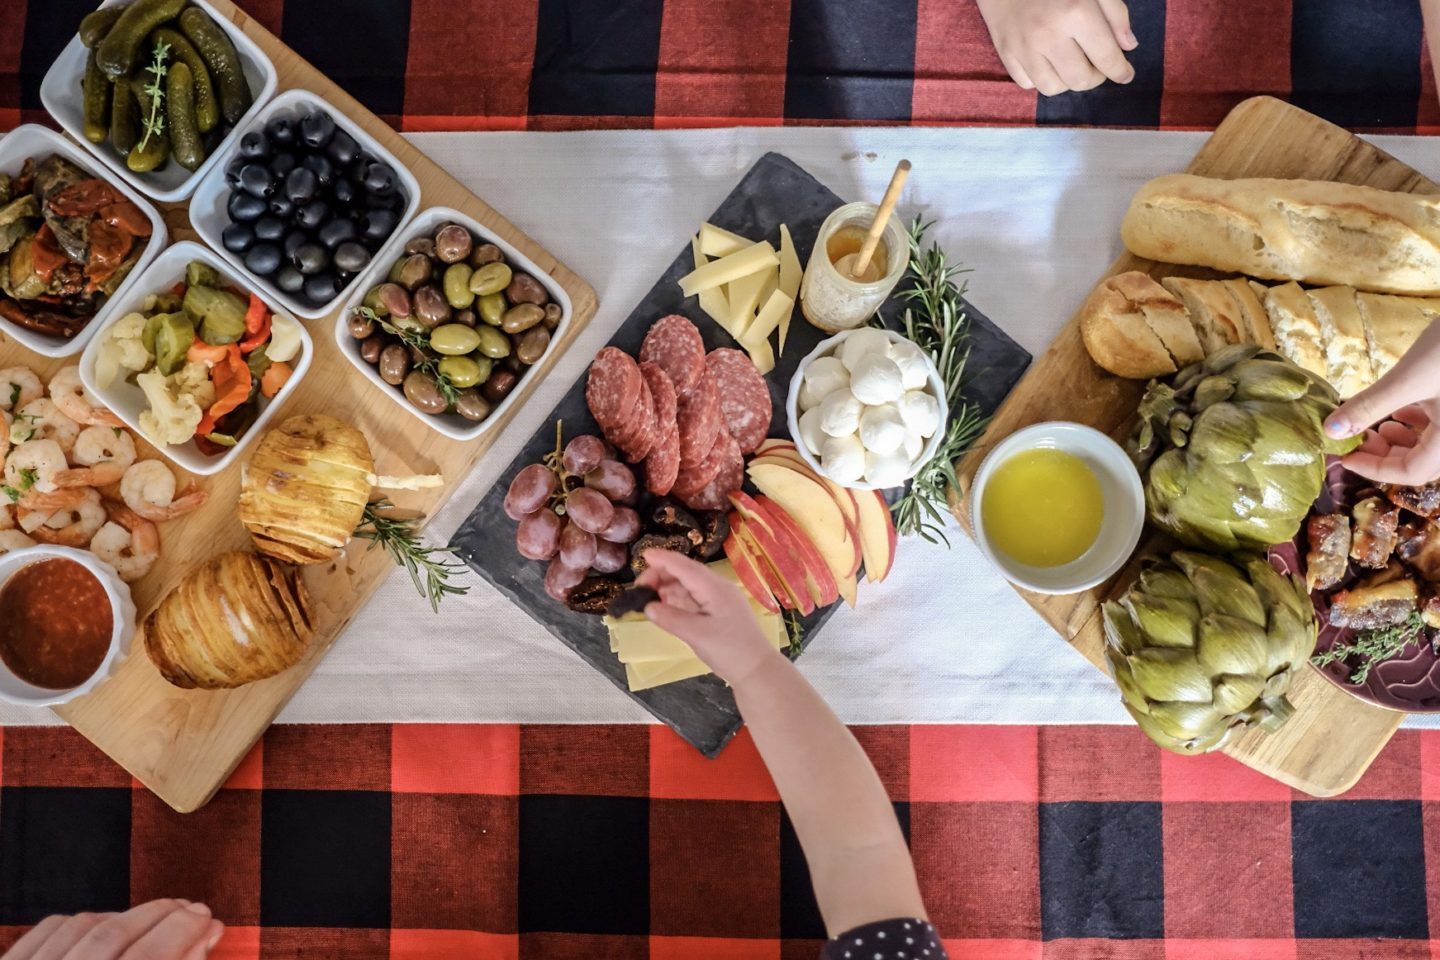 How to Build the Best Charcuterie Board